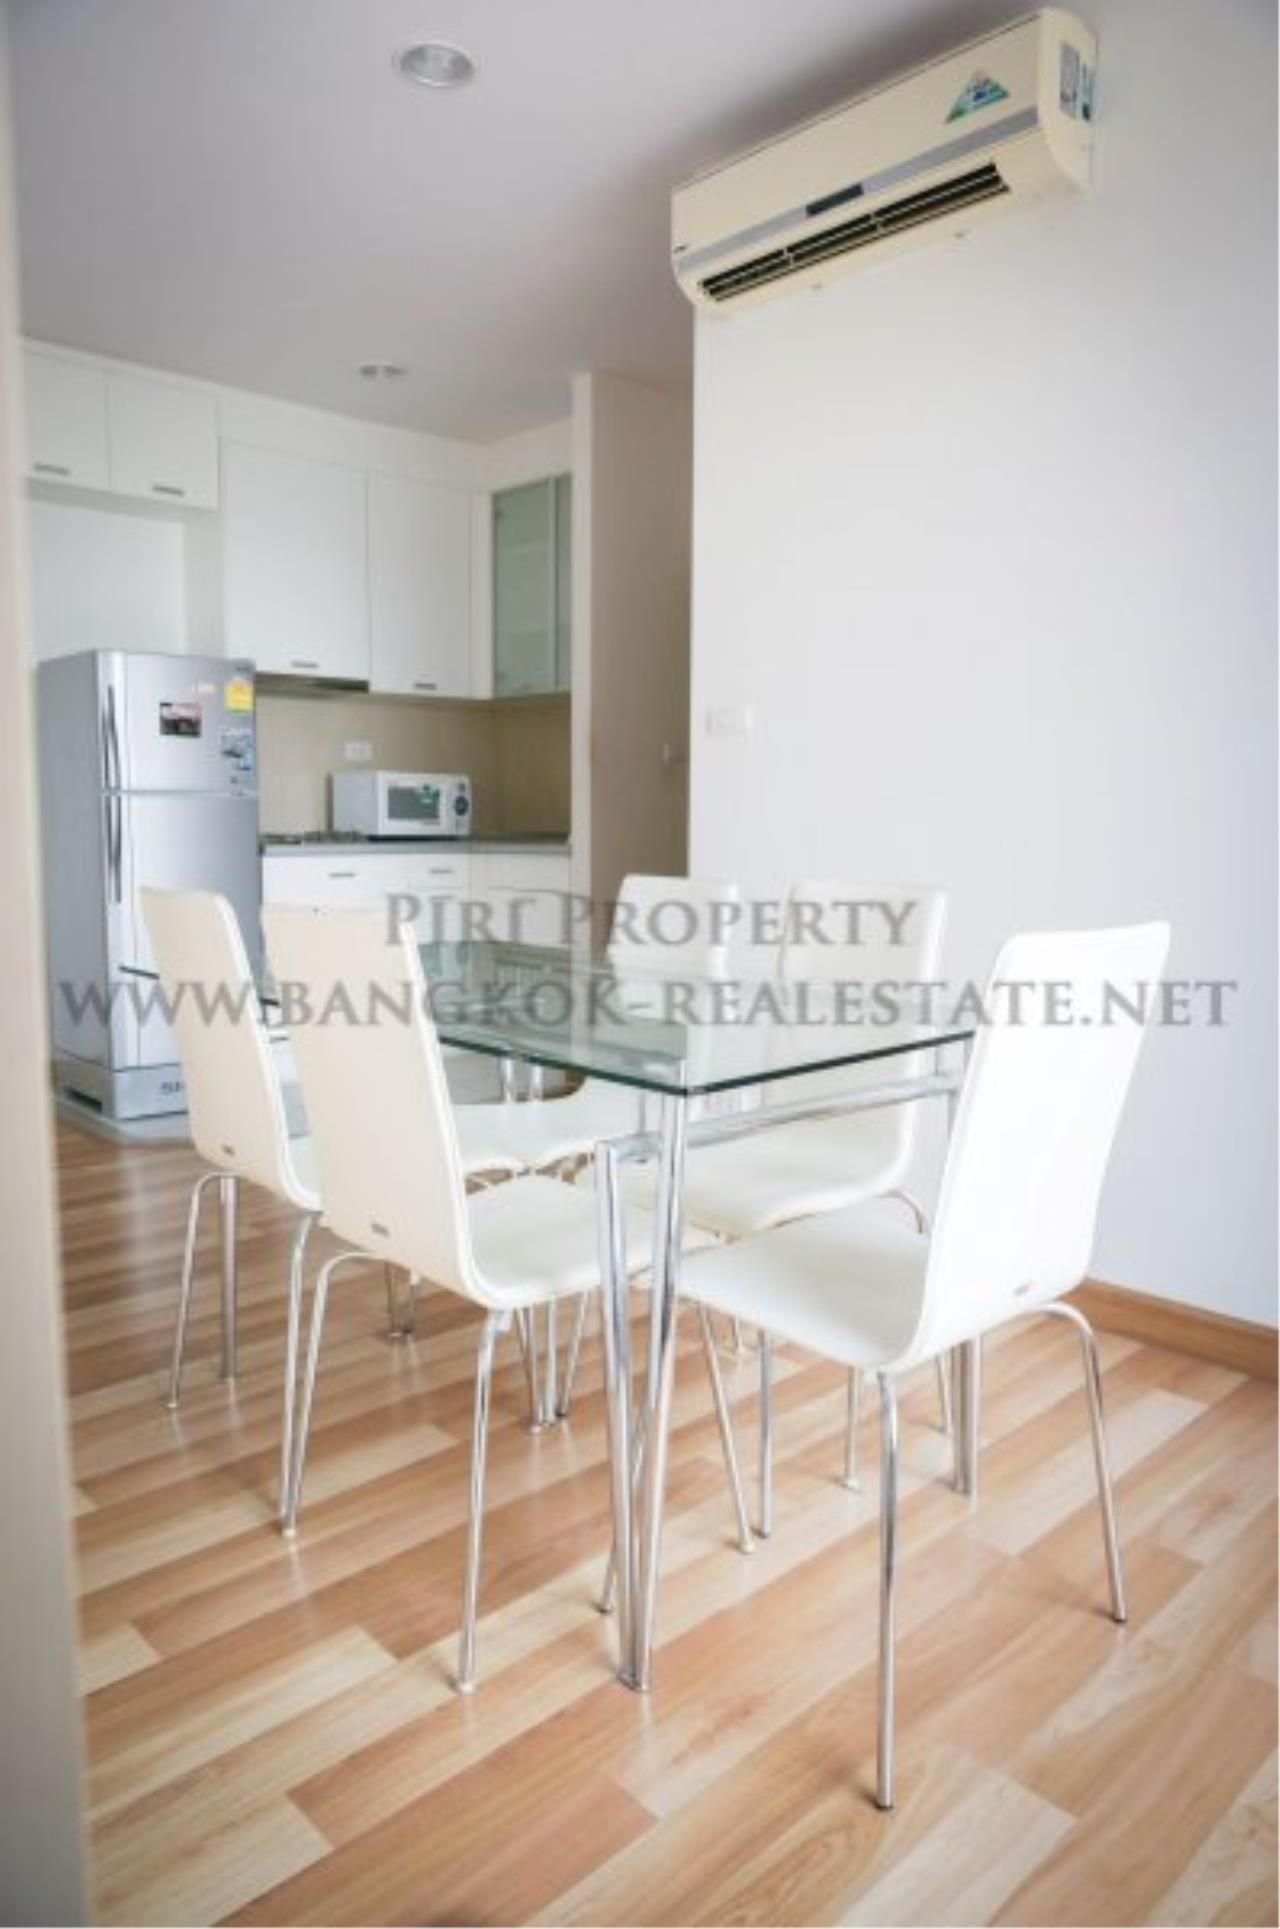 Piri Property Agency's Centric Scene Sukhumvit 64 - Nice and Bright 2 Bedroom Condo 3